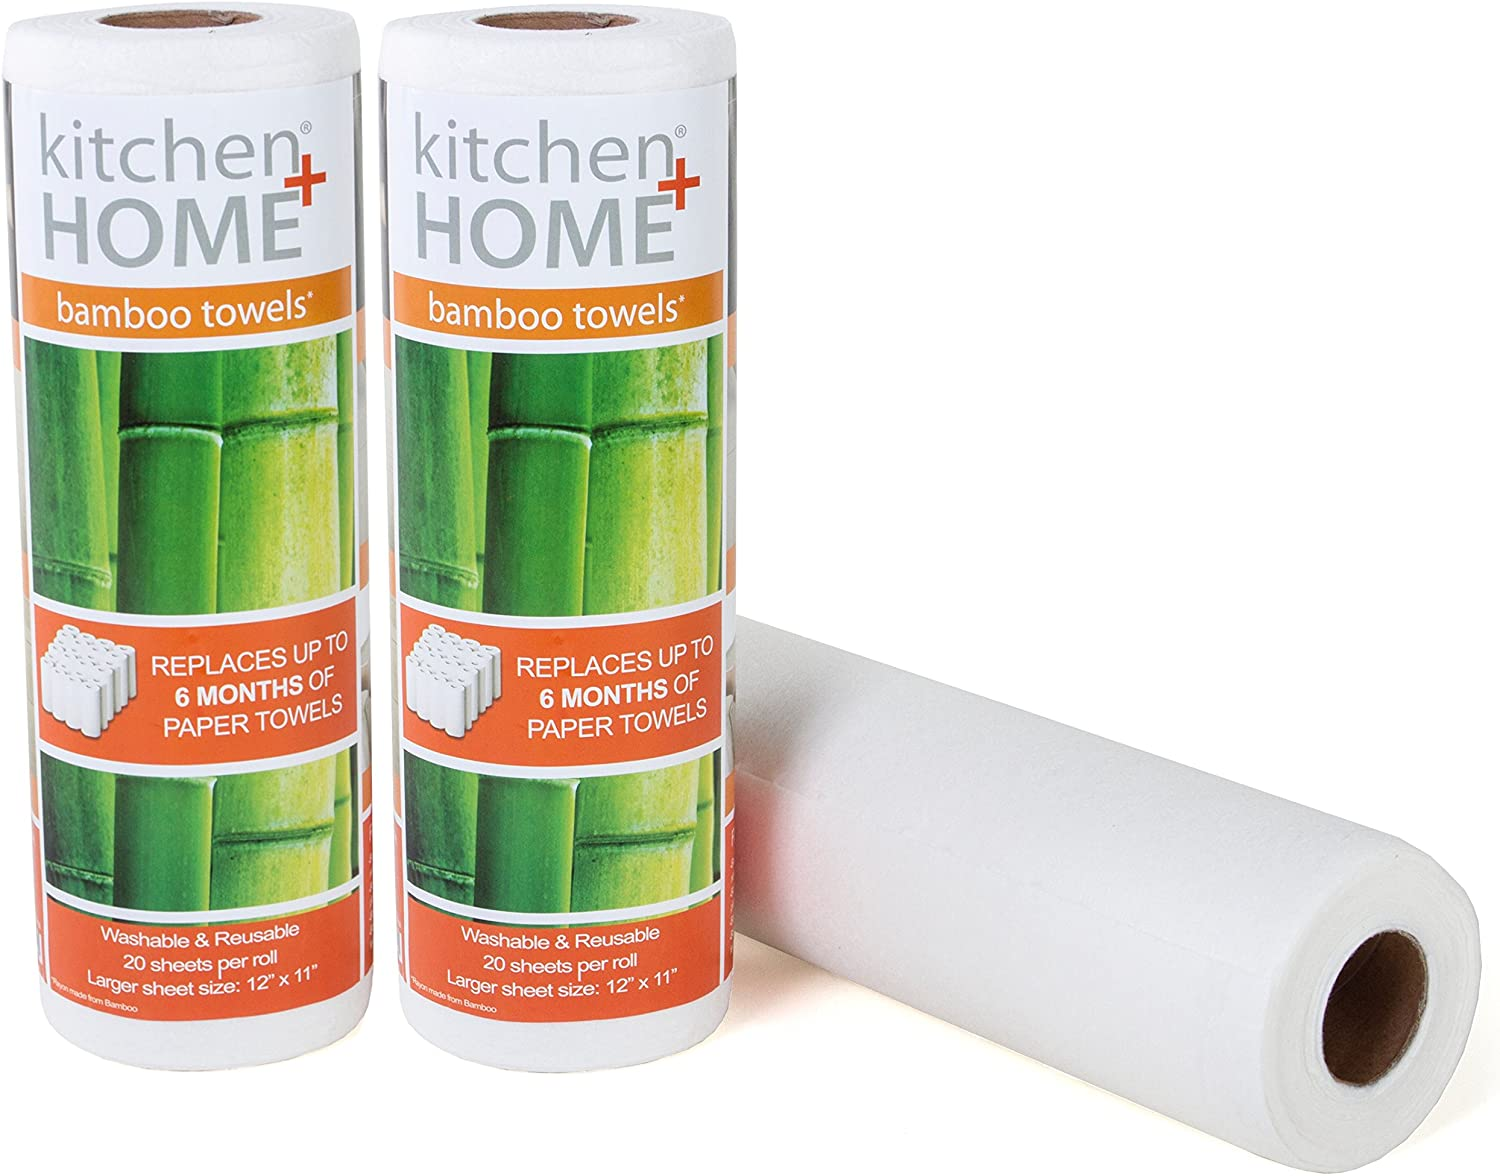 Kitchen + Home bamboo towels are a heavy duty alternative to your regular paper towel